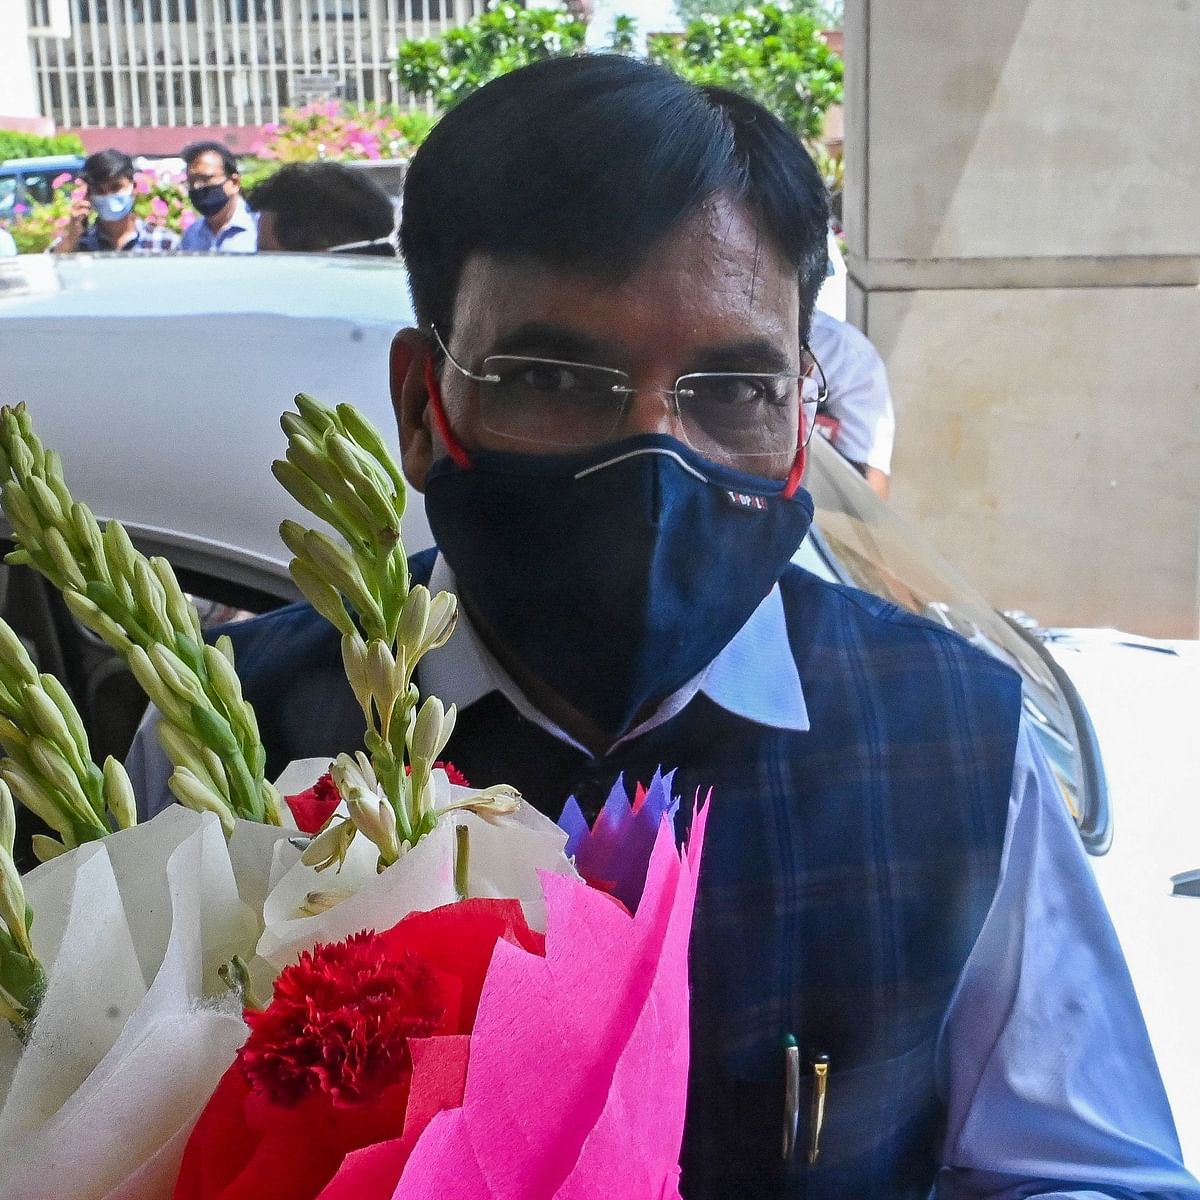 India gets new Health Minister as COVID-19 pandemic rages - What is the road ahead for Mansukh Mandaviya?